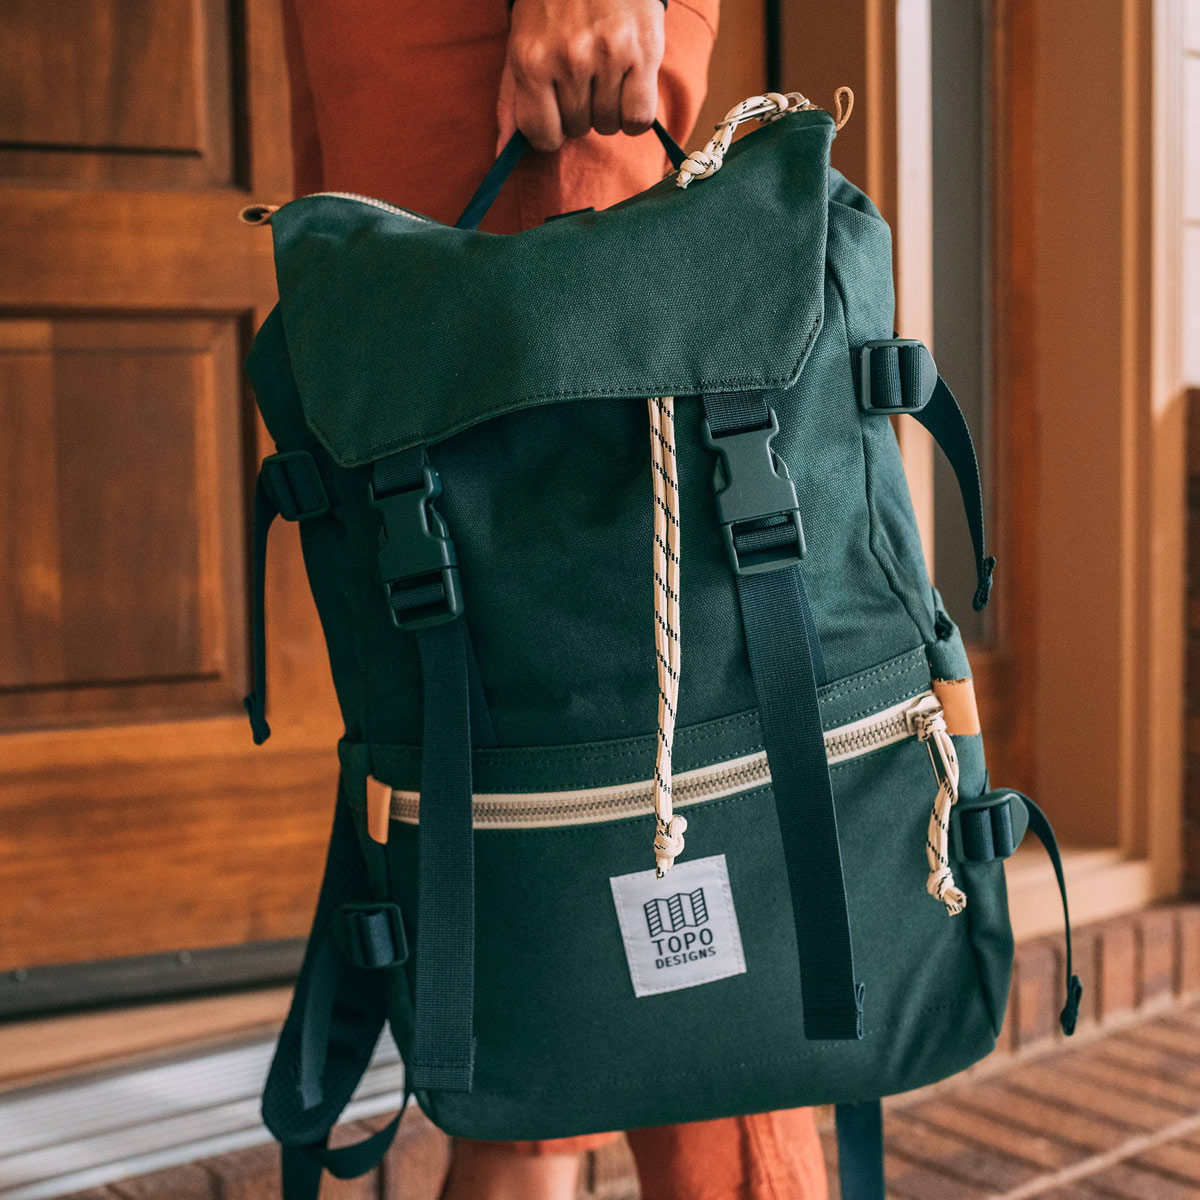 Topo Designs Rover Pack Canvas Forest, Mountain-inspired durability meets city-ready styling in the Rover Pack Canvas